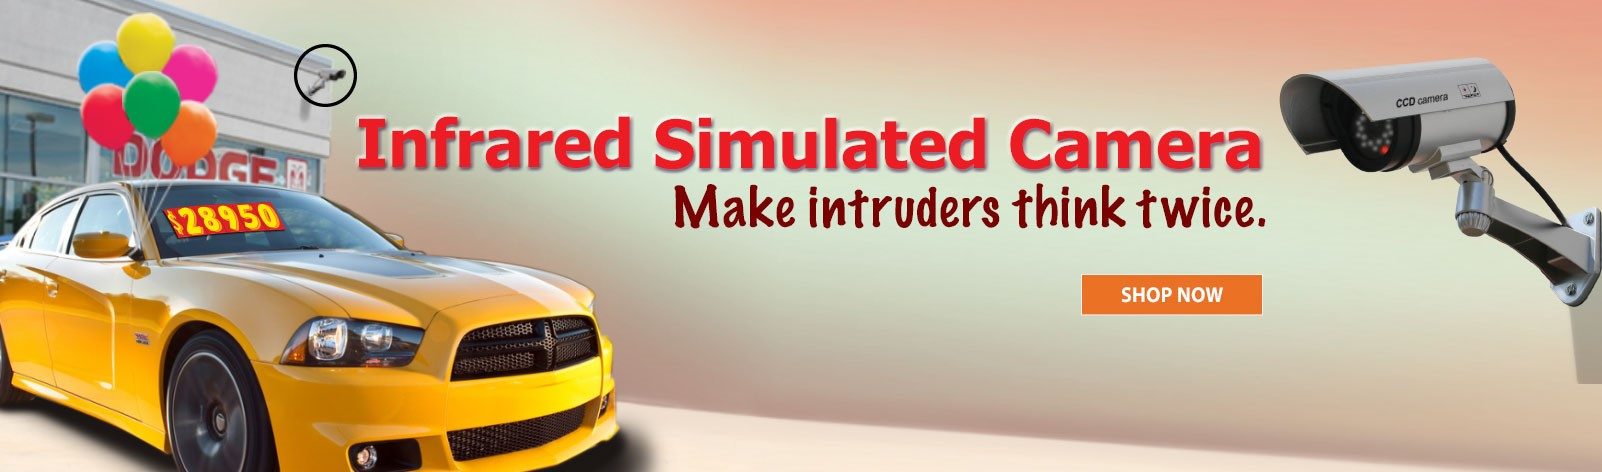 Make intruders think twice with our Simulated Camera.